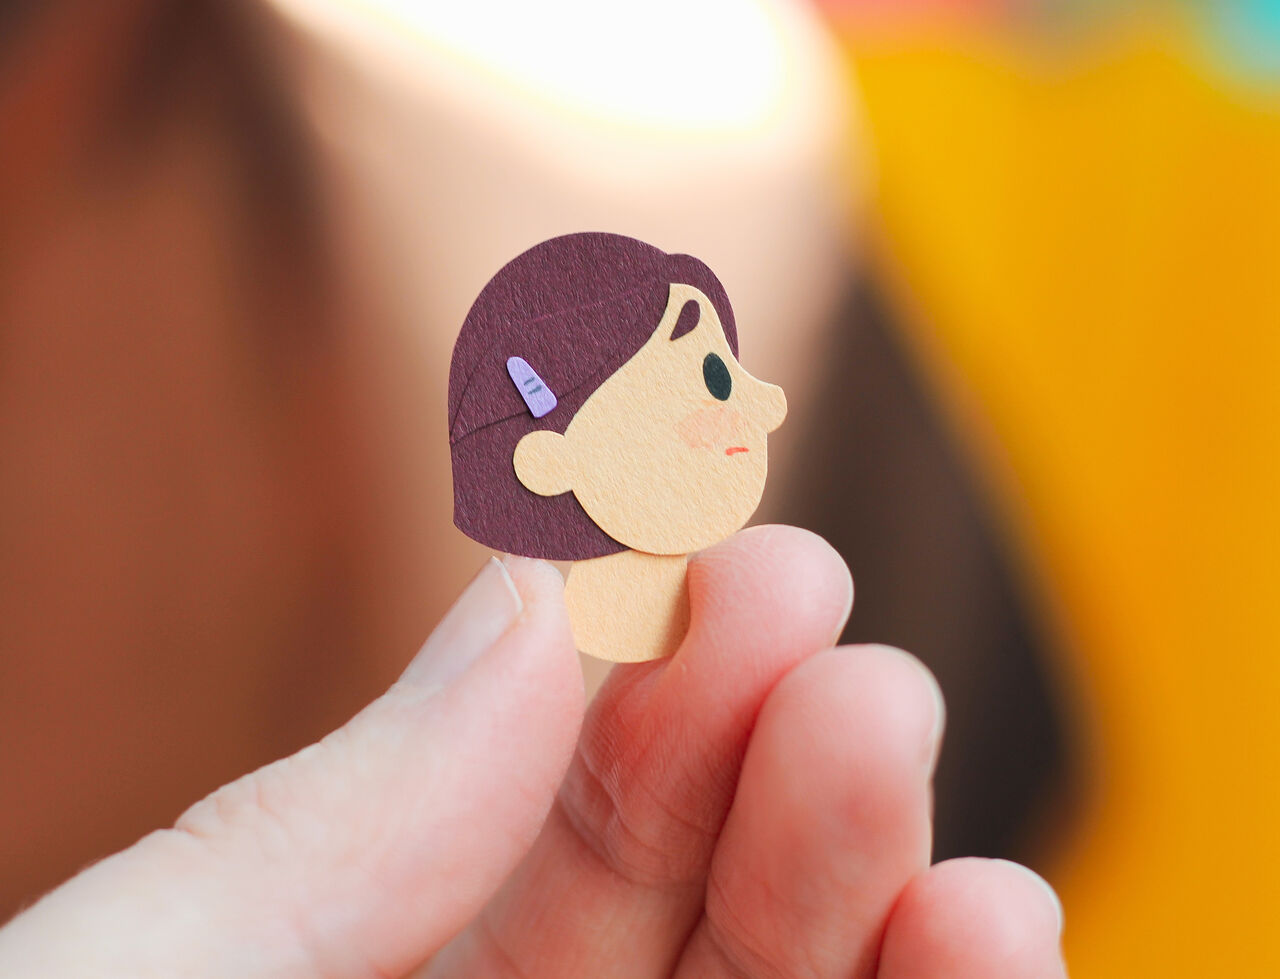 Close-up photo of someone's fingers holding a tiny head illustrated using cut paper.